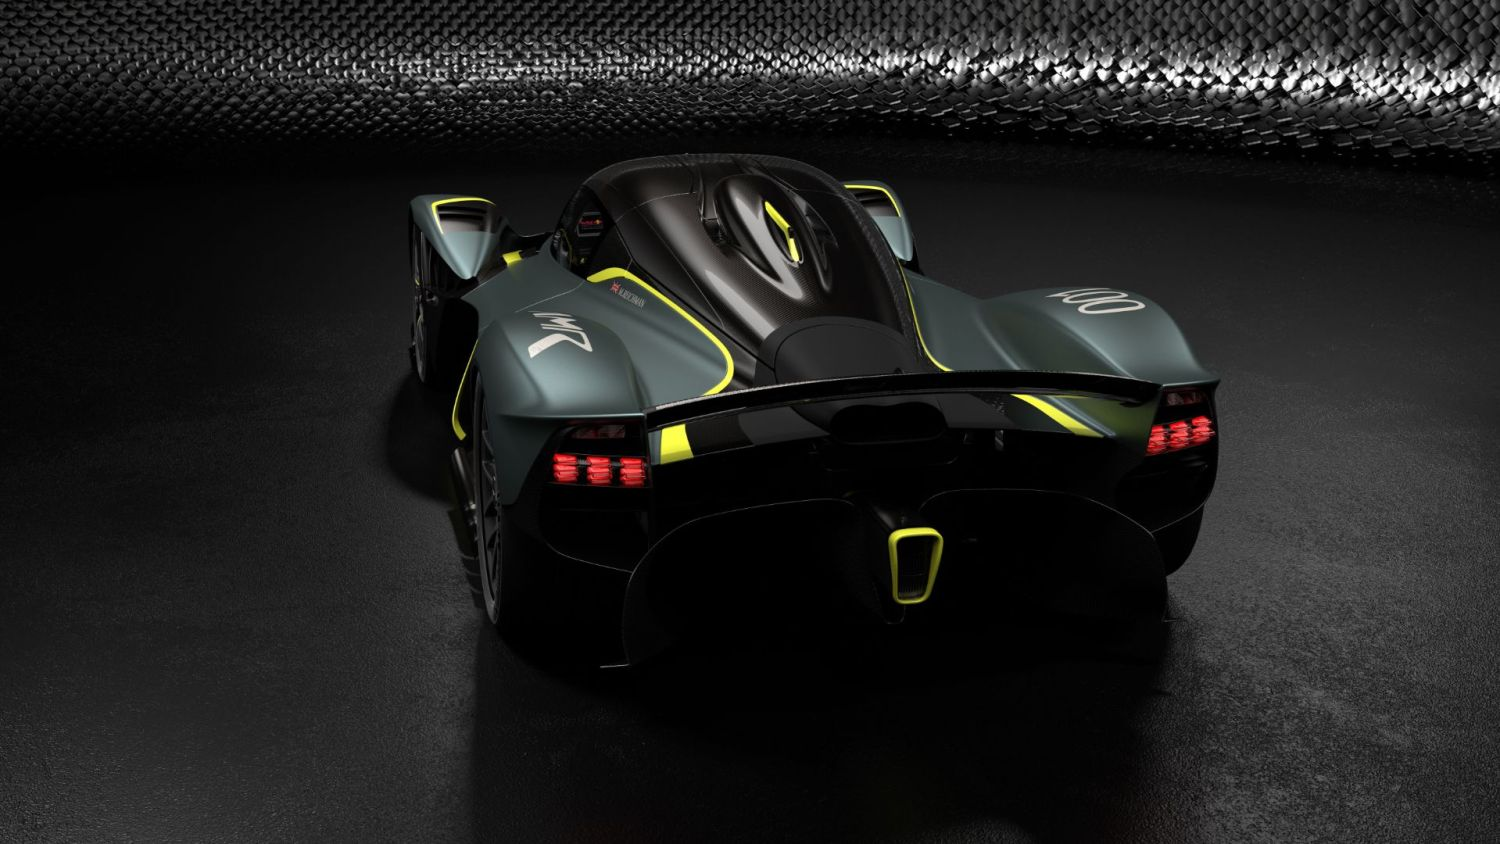 Aston Martin Valkyrie with AMR Track Performance Pack - Stirling Green and Lime livery